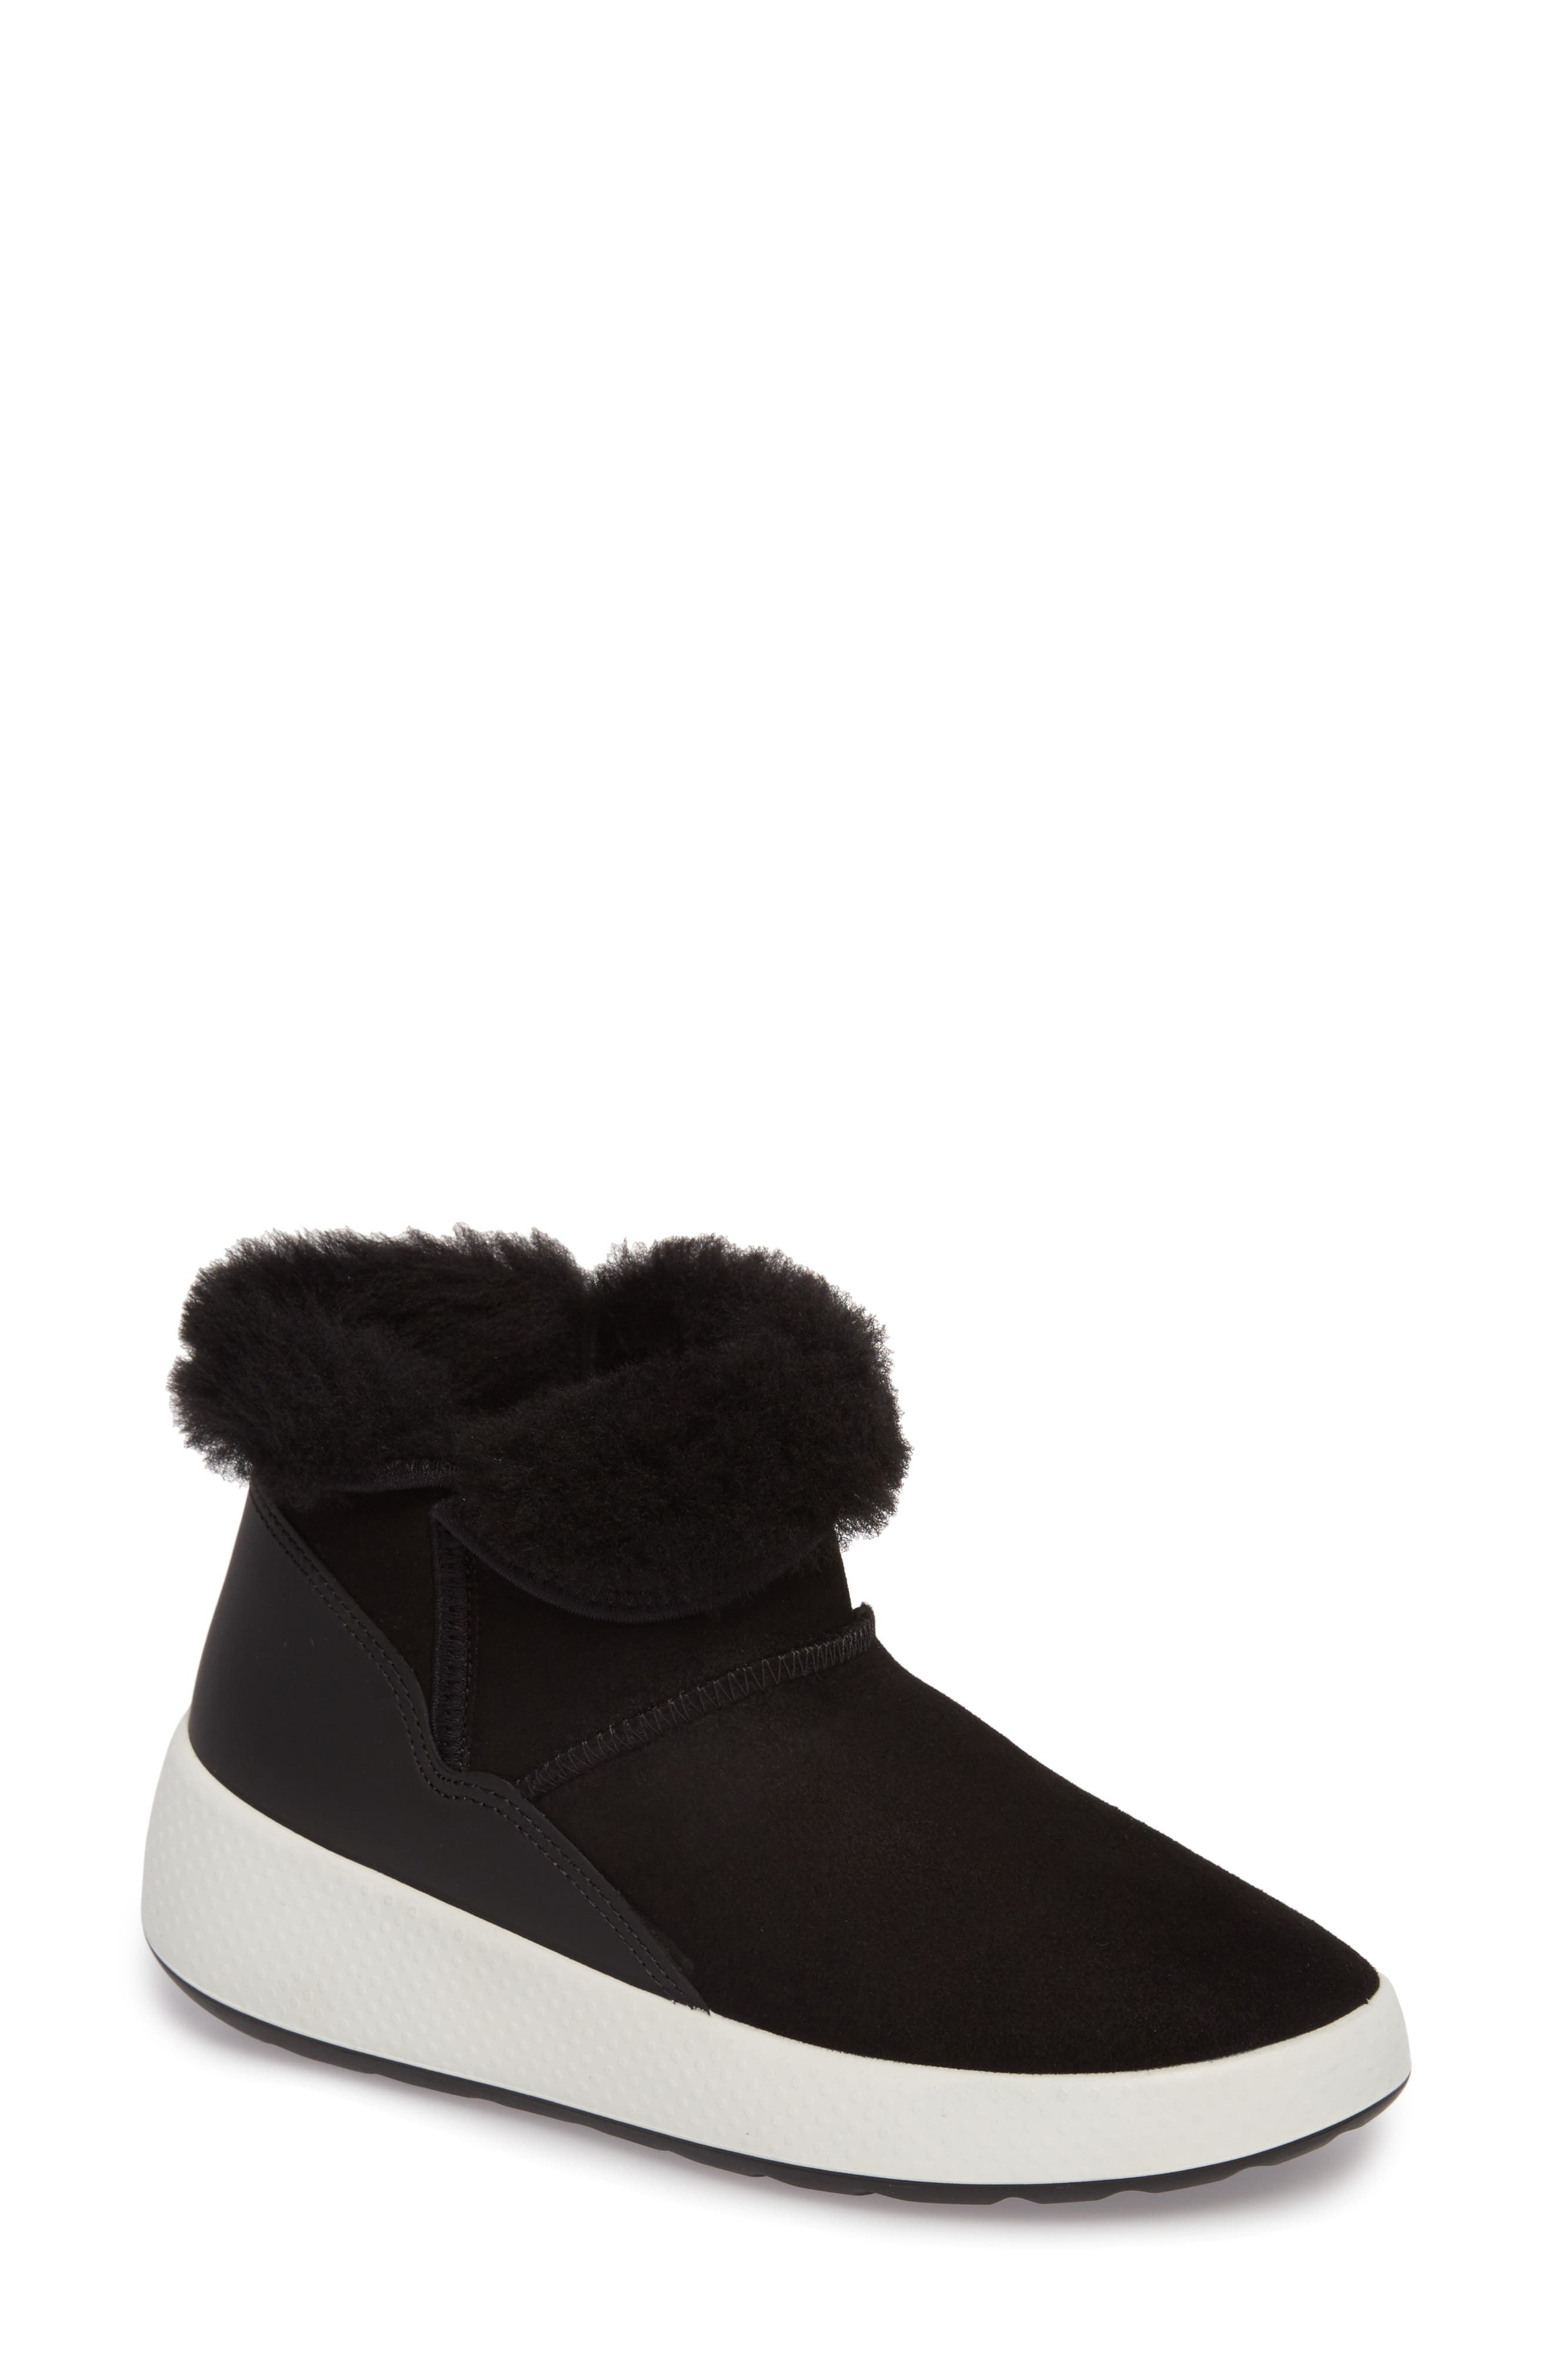 Ukiuk Genuine Shearling Boot,                         Main,                         color, 001